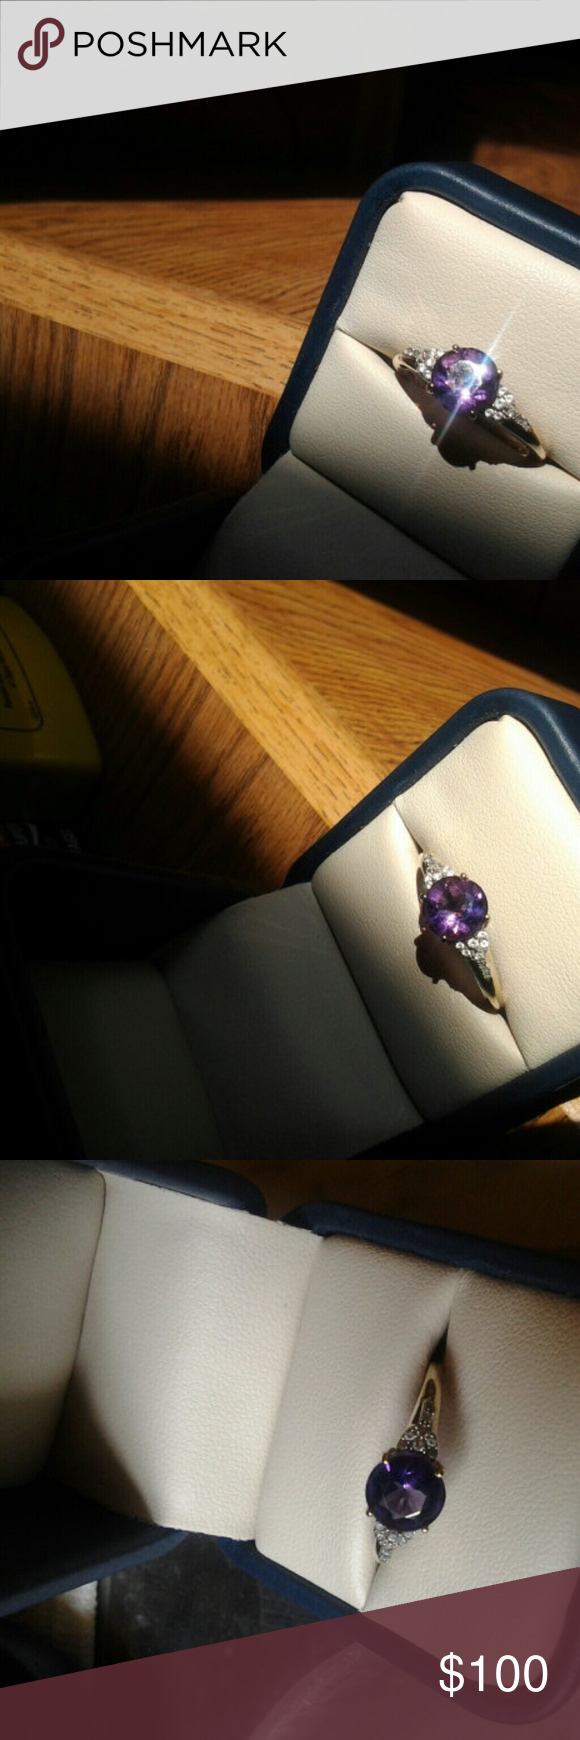 10 k  gold ring 10 k yellow gold, gorgeous deep purple, African Amyethist,  white zircon ring.  It flashes reds, blues, and purples. Bags Satchels